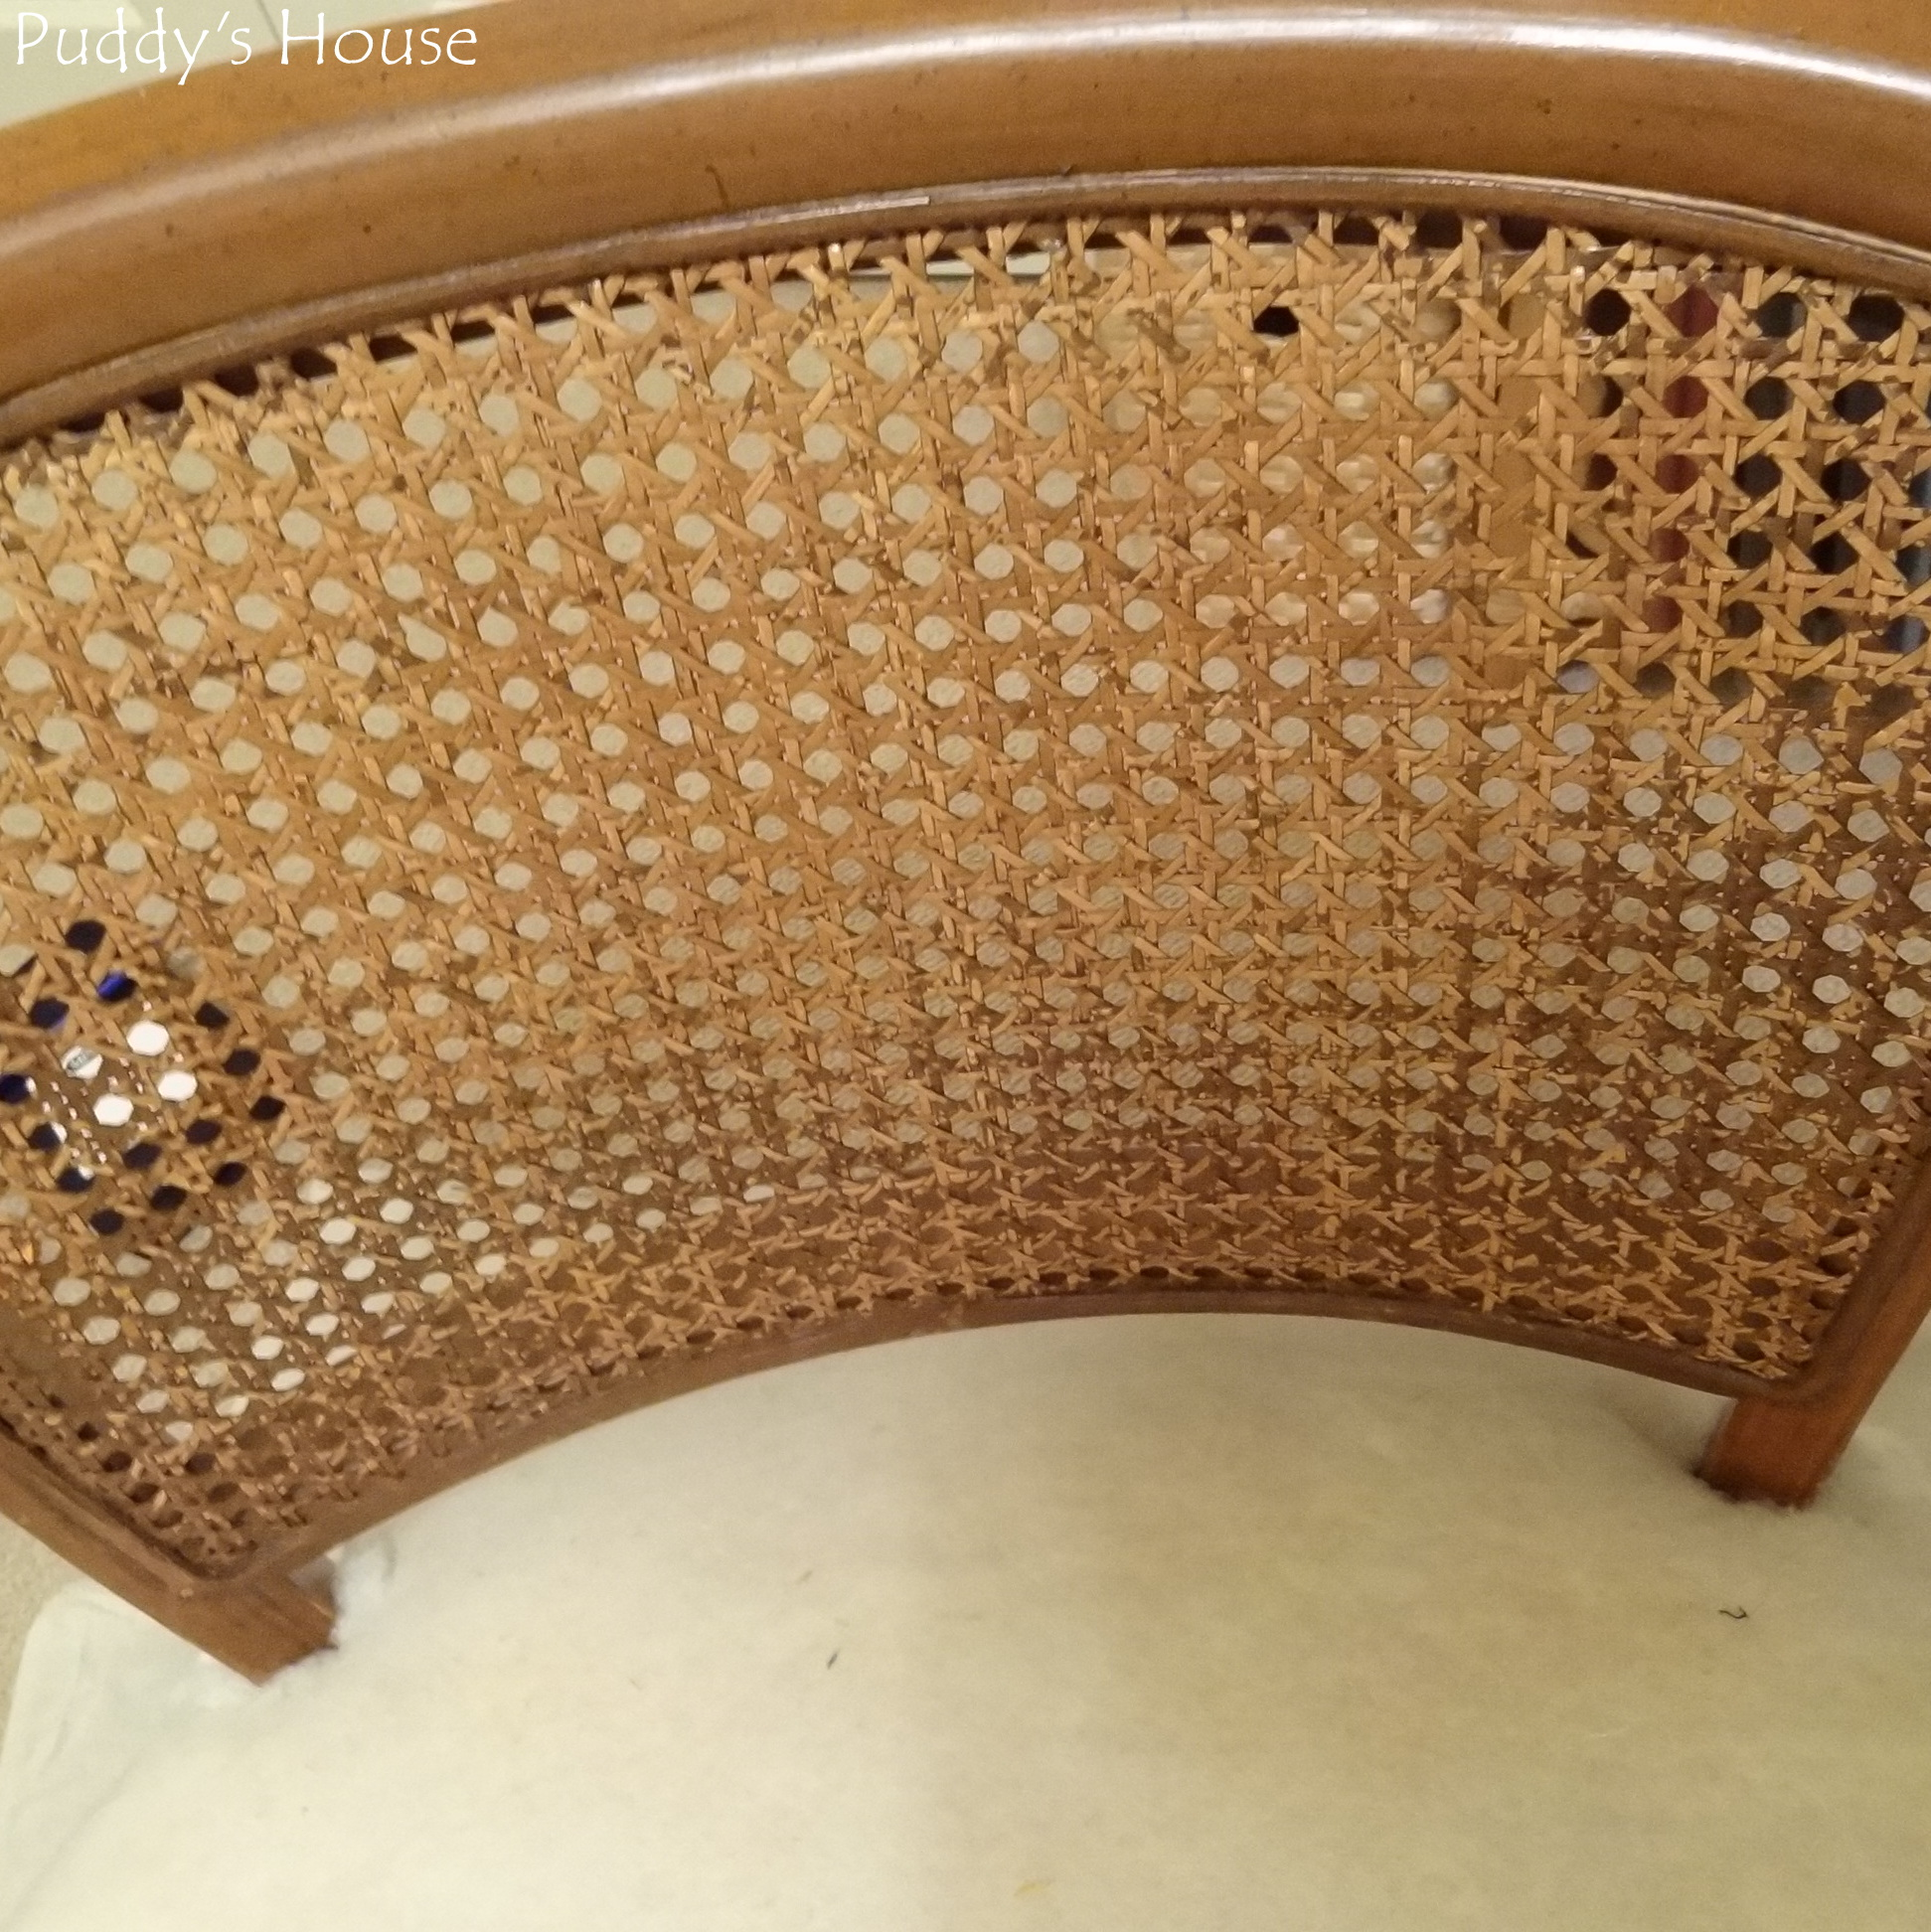 Chair caning supplies - Ugly To Pretty Puddy S House Ugly To Pretty Chair Caning Before